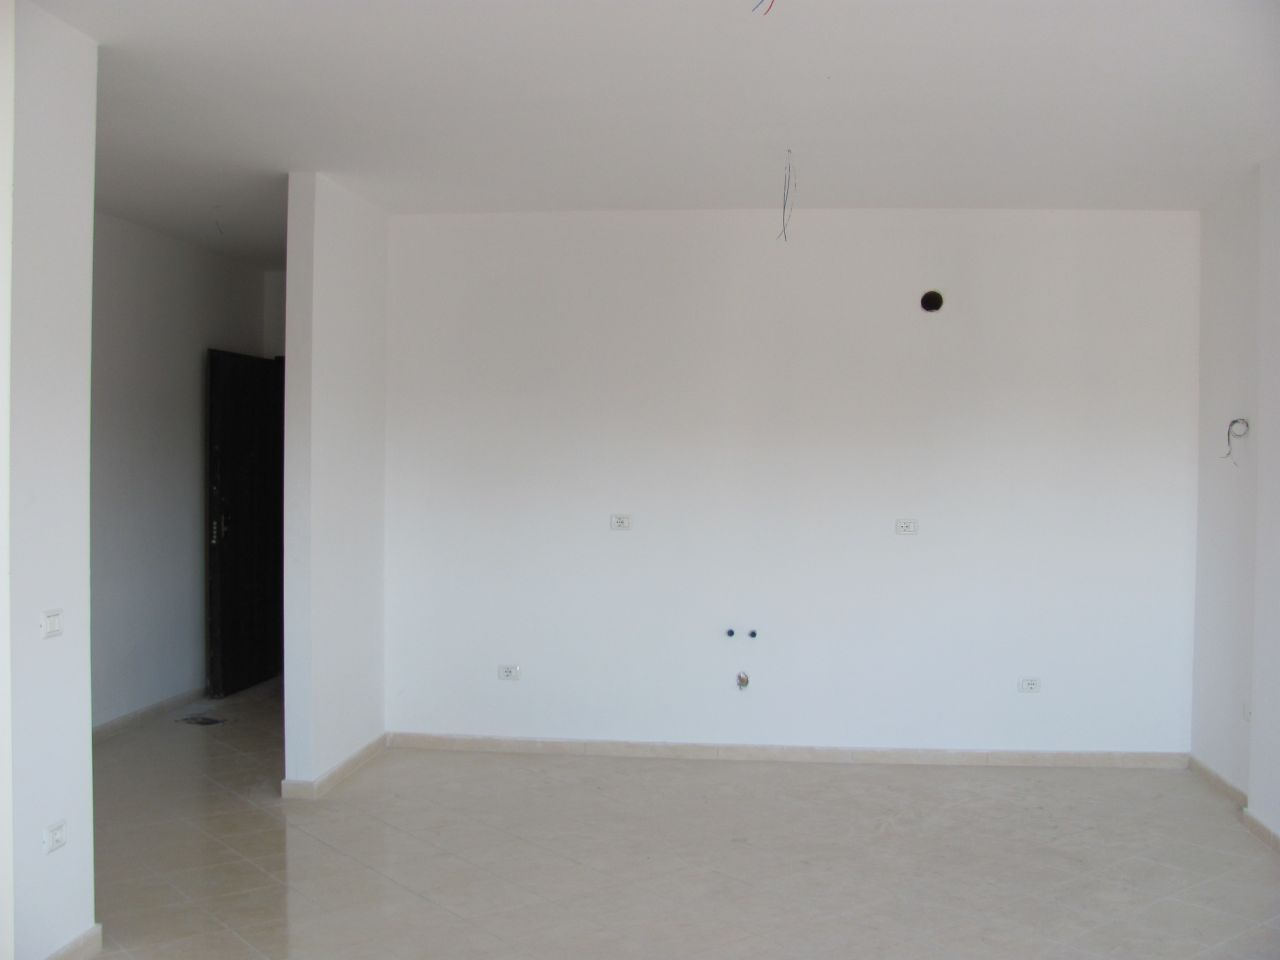 Albania Real Estate in Tirana. Finished Property in Albania offered by Albania Property Group